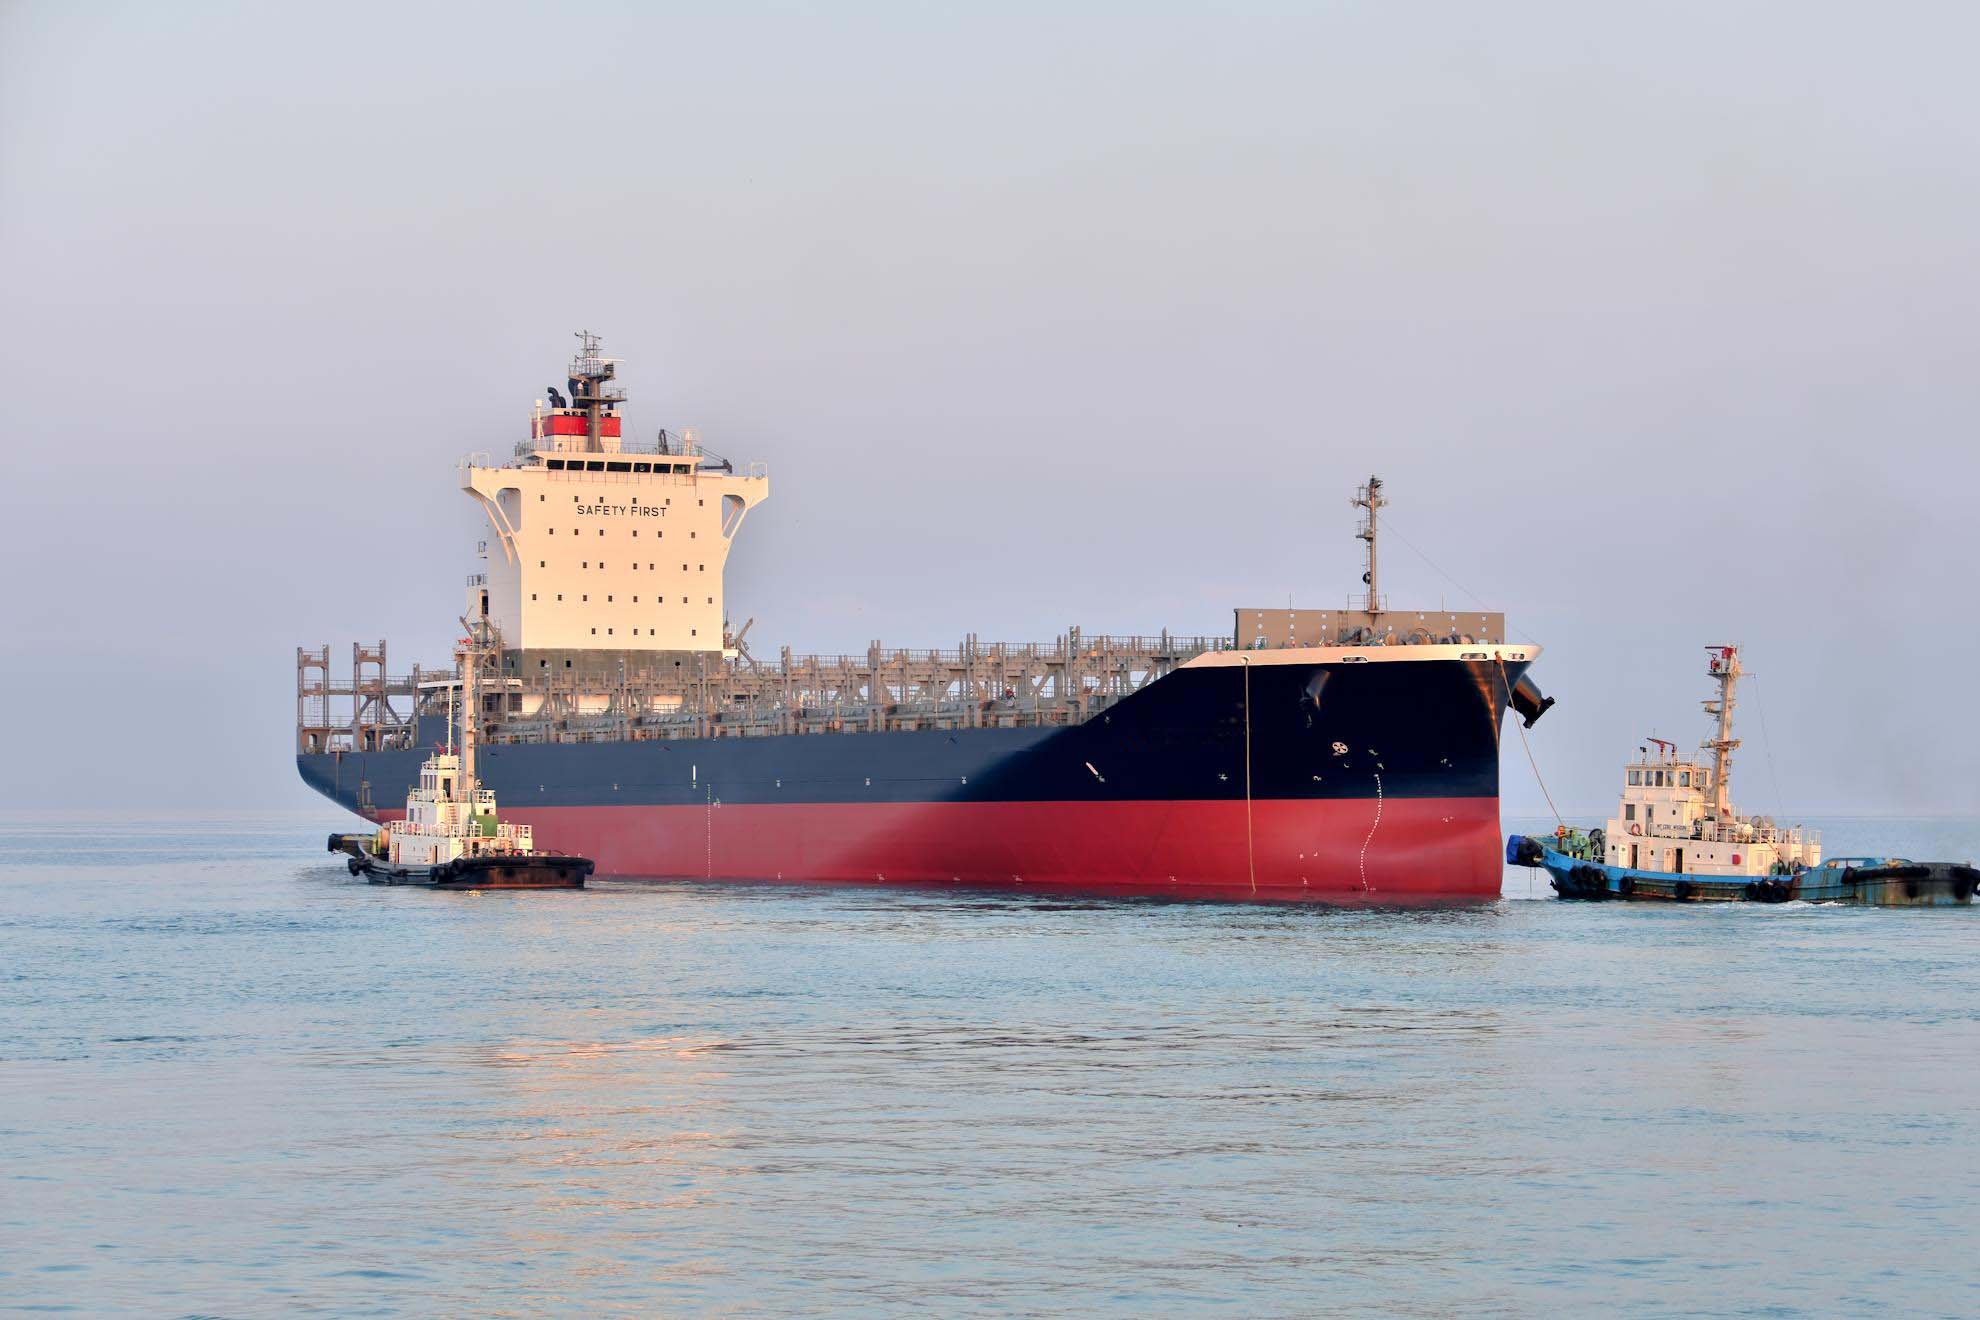 First new 1,900 TEU container carrier built at TSUNEISHI SHIPBUILDING's Philippines site